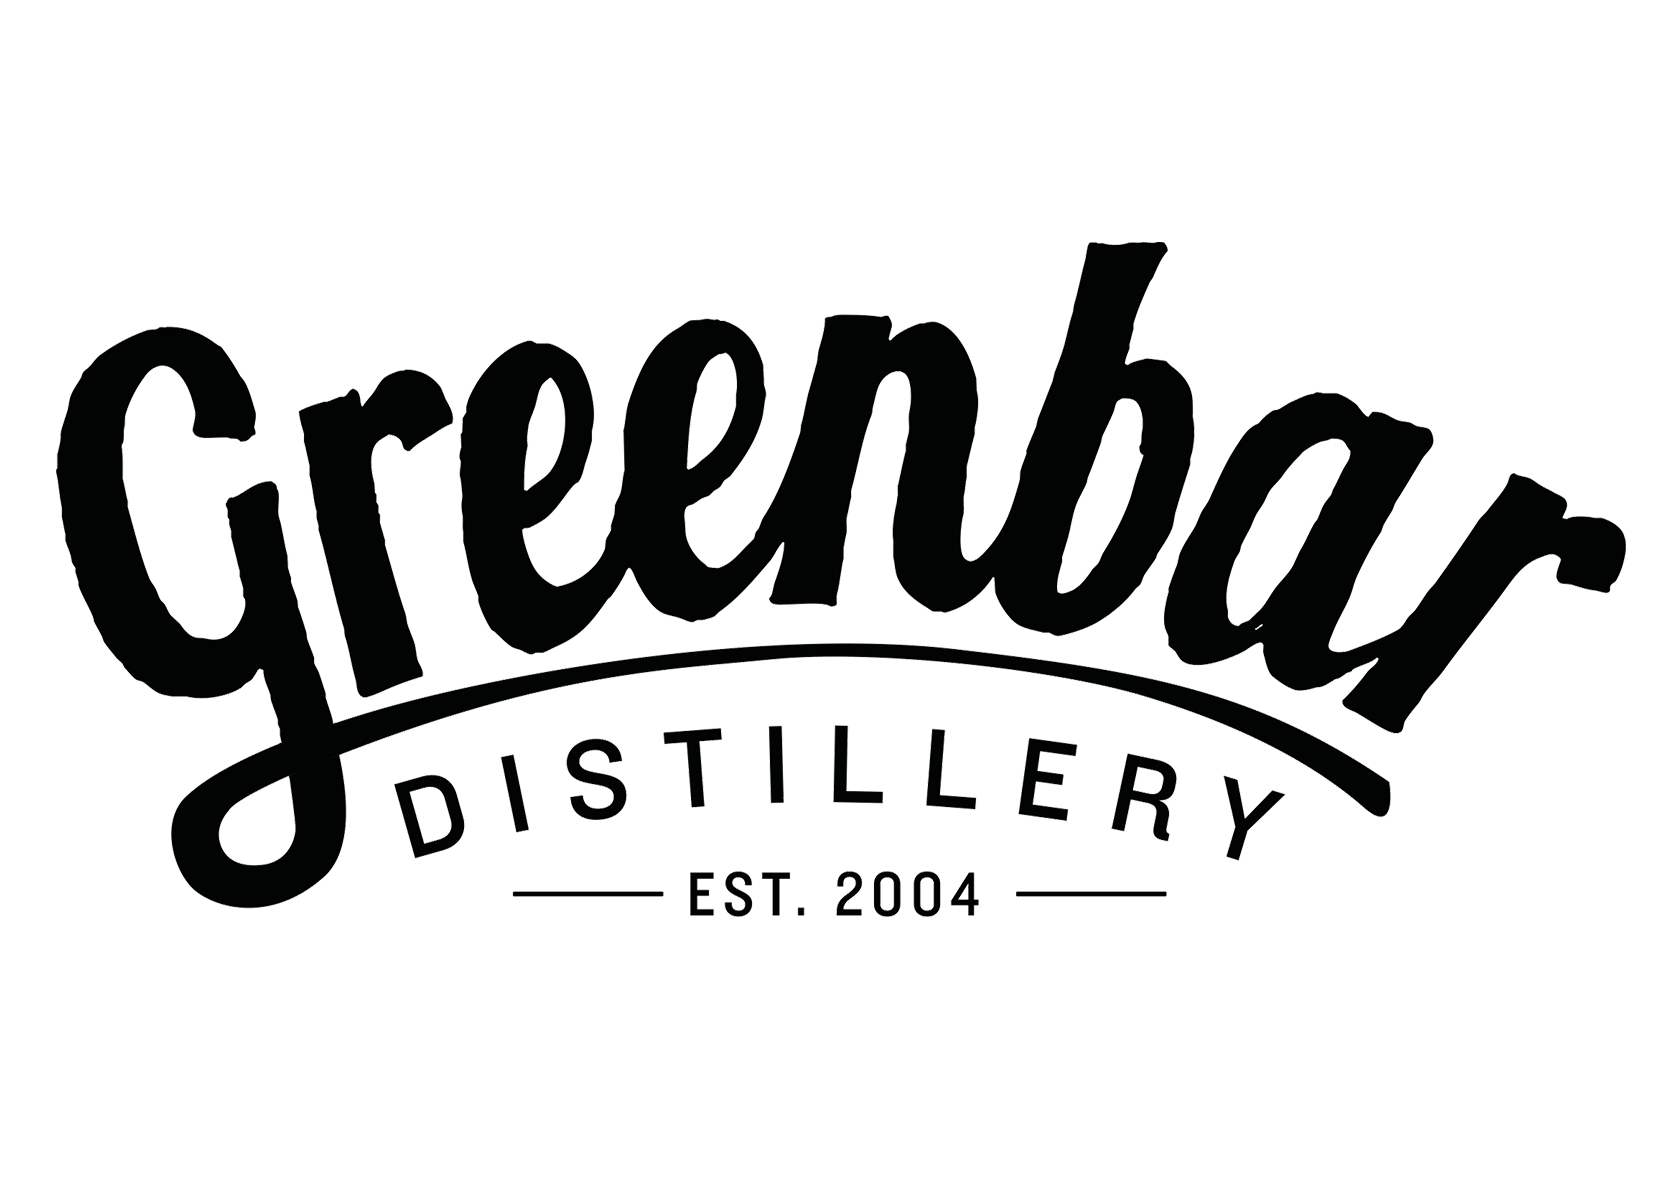 https://greenbardistillery.com/